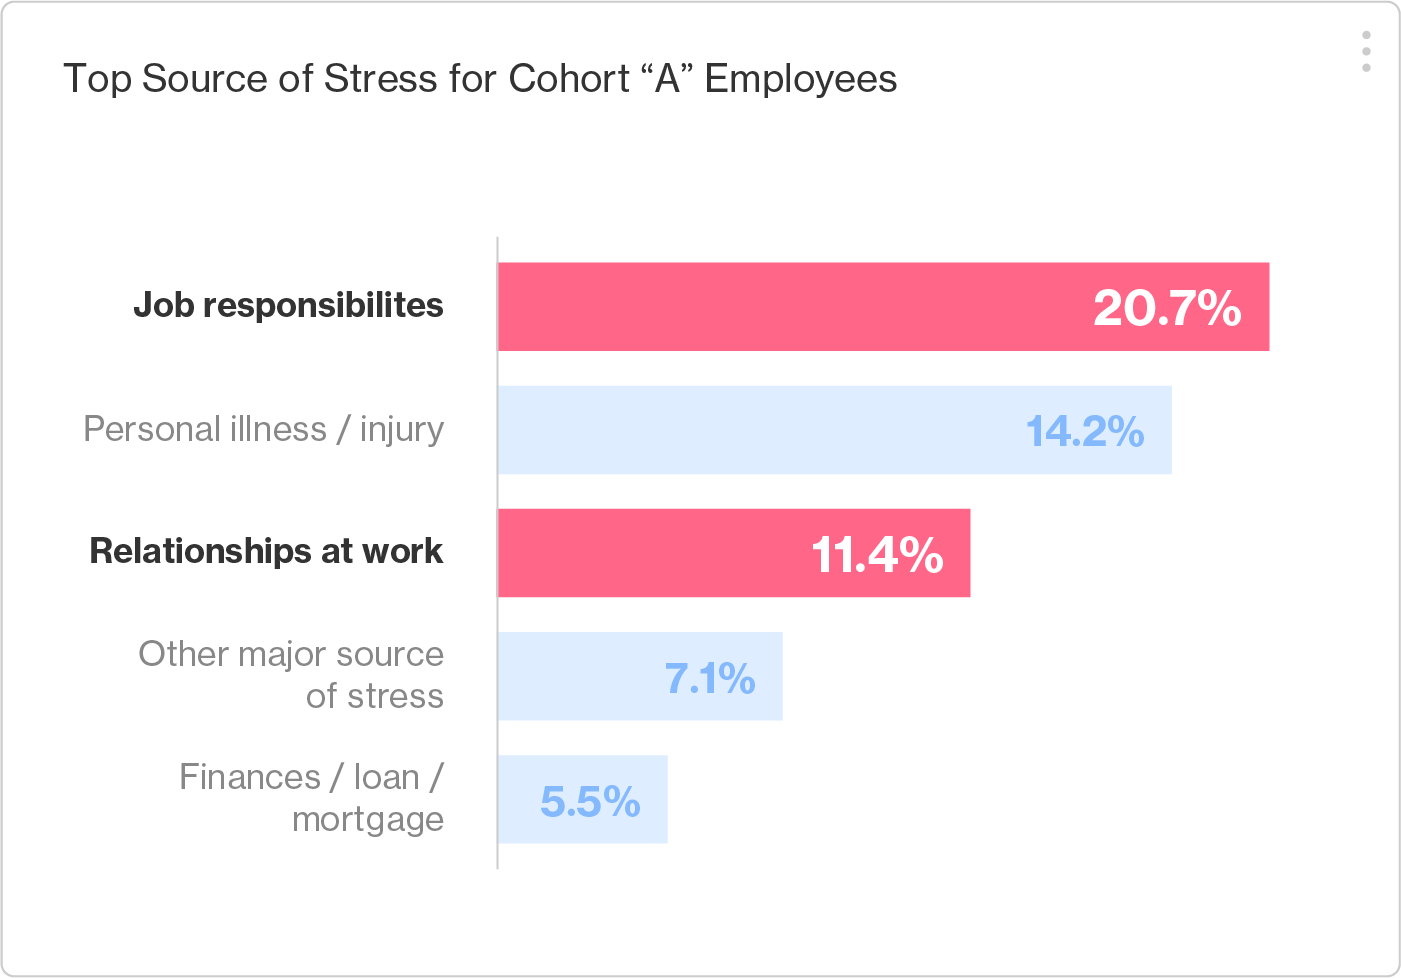 Artemis Platform screenshot indicating the top sources of stress. The top three are Job responsibilities rank highest (20.7%), Personal illness/Injury (14.2%), Relationships at work (11.4%).